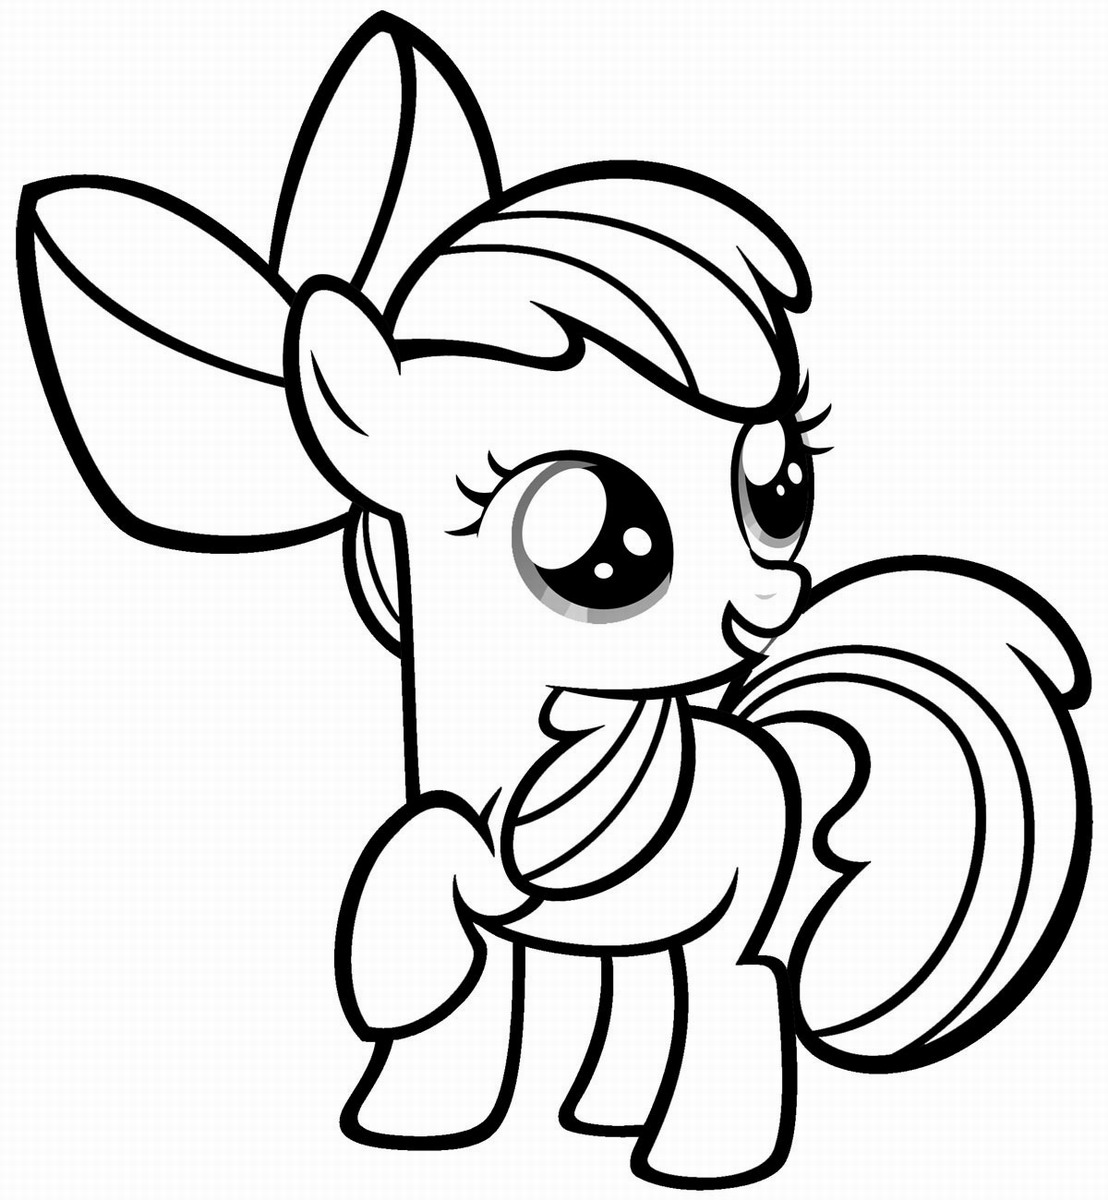 my little pony images to print my little pony coloring pages for girls print for free or to pony print my little images